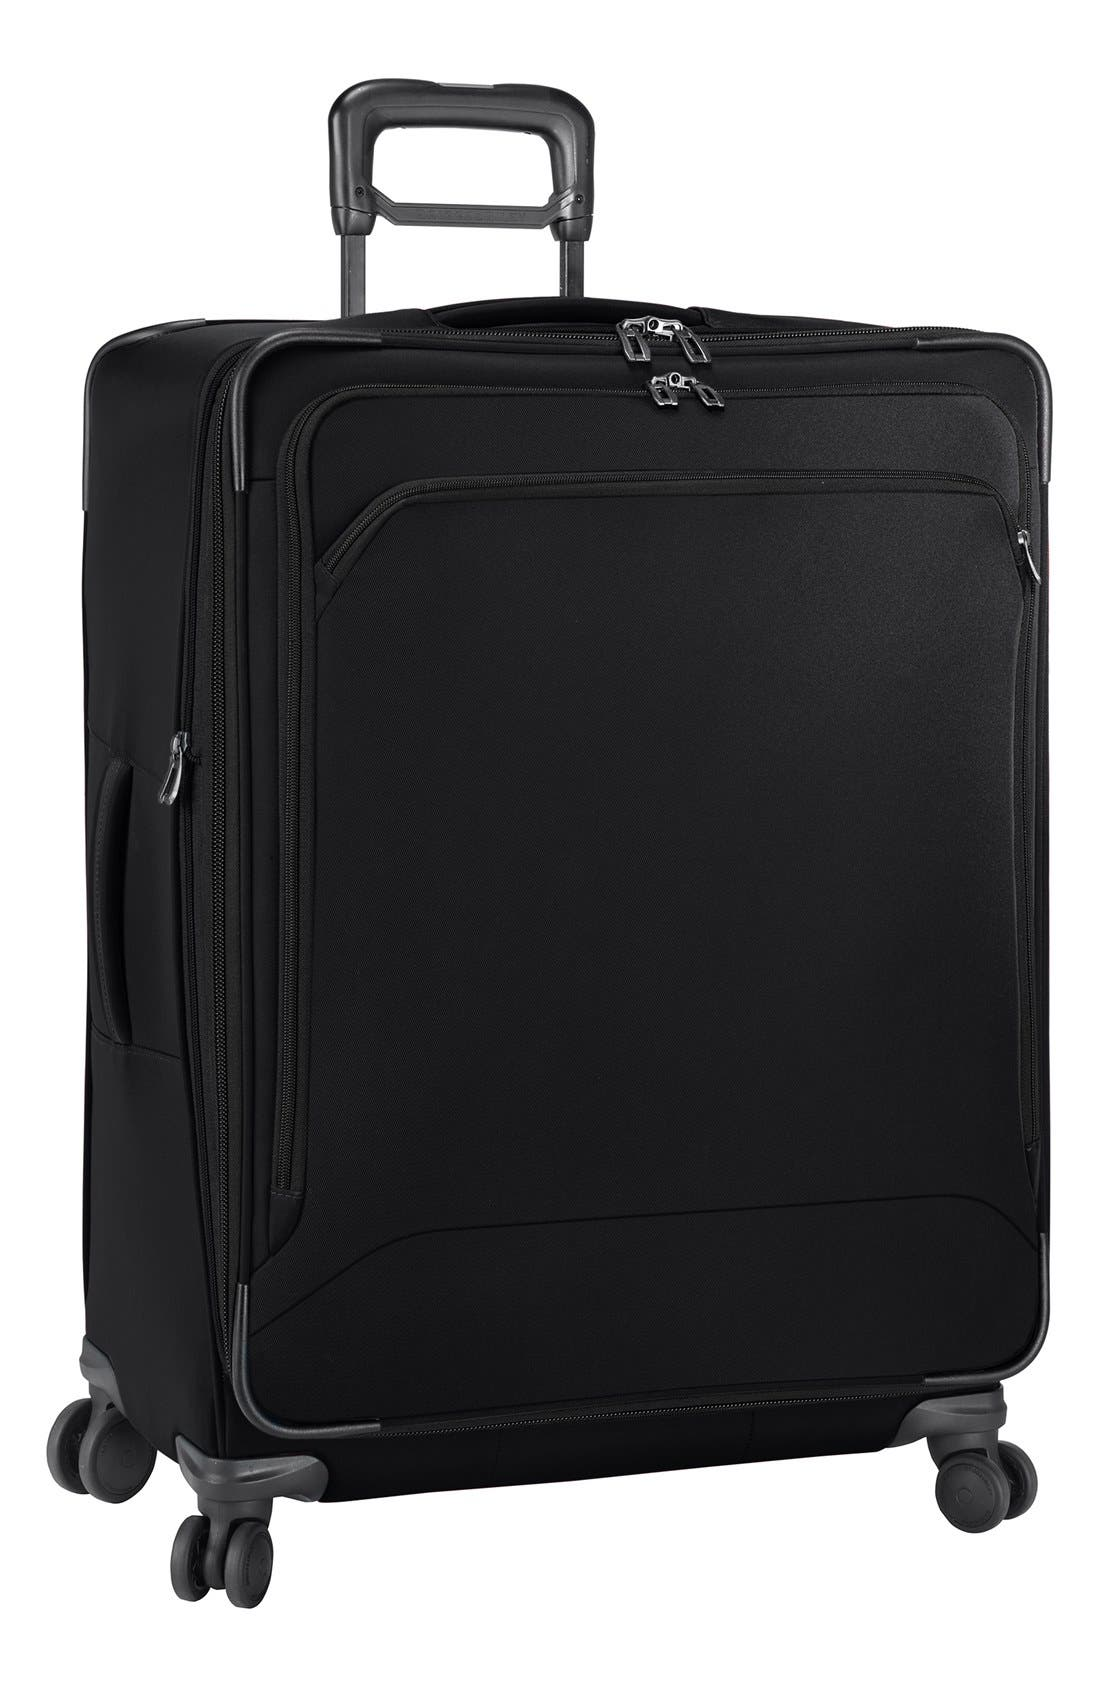 BRIGGS & RILEY 'Transcend' Large Expandable Wheeled Suitcase